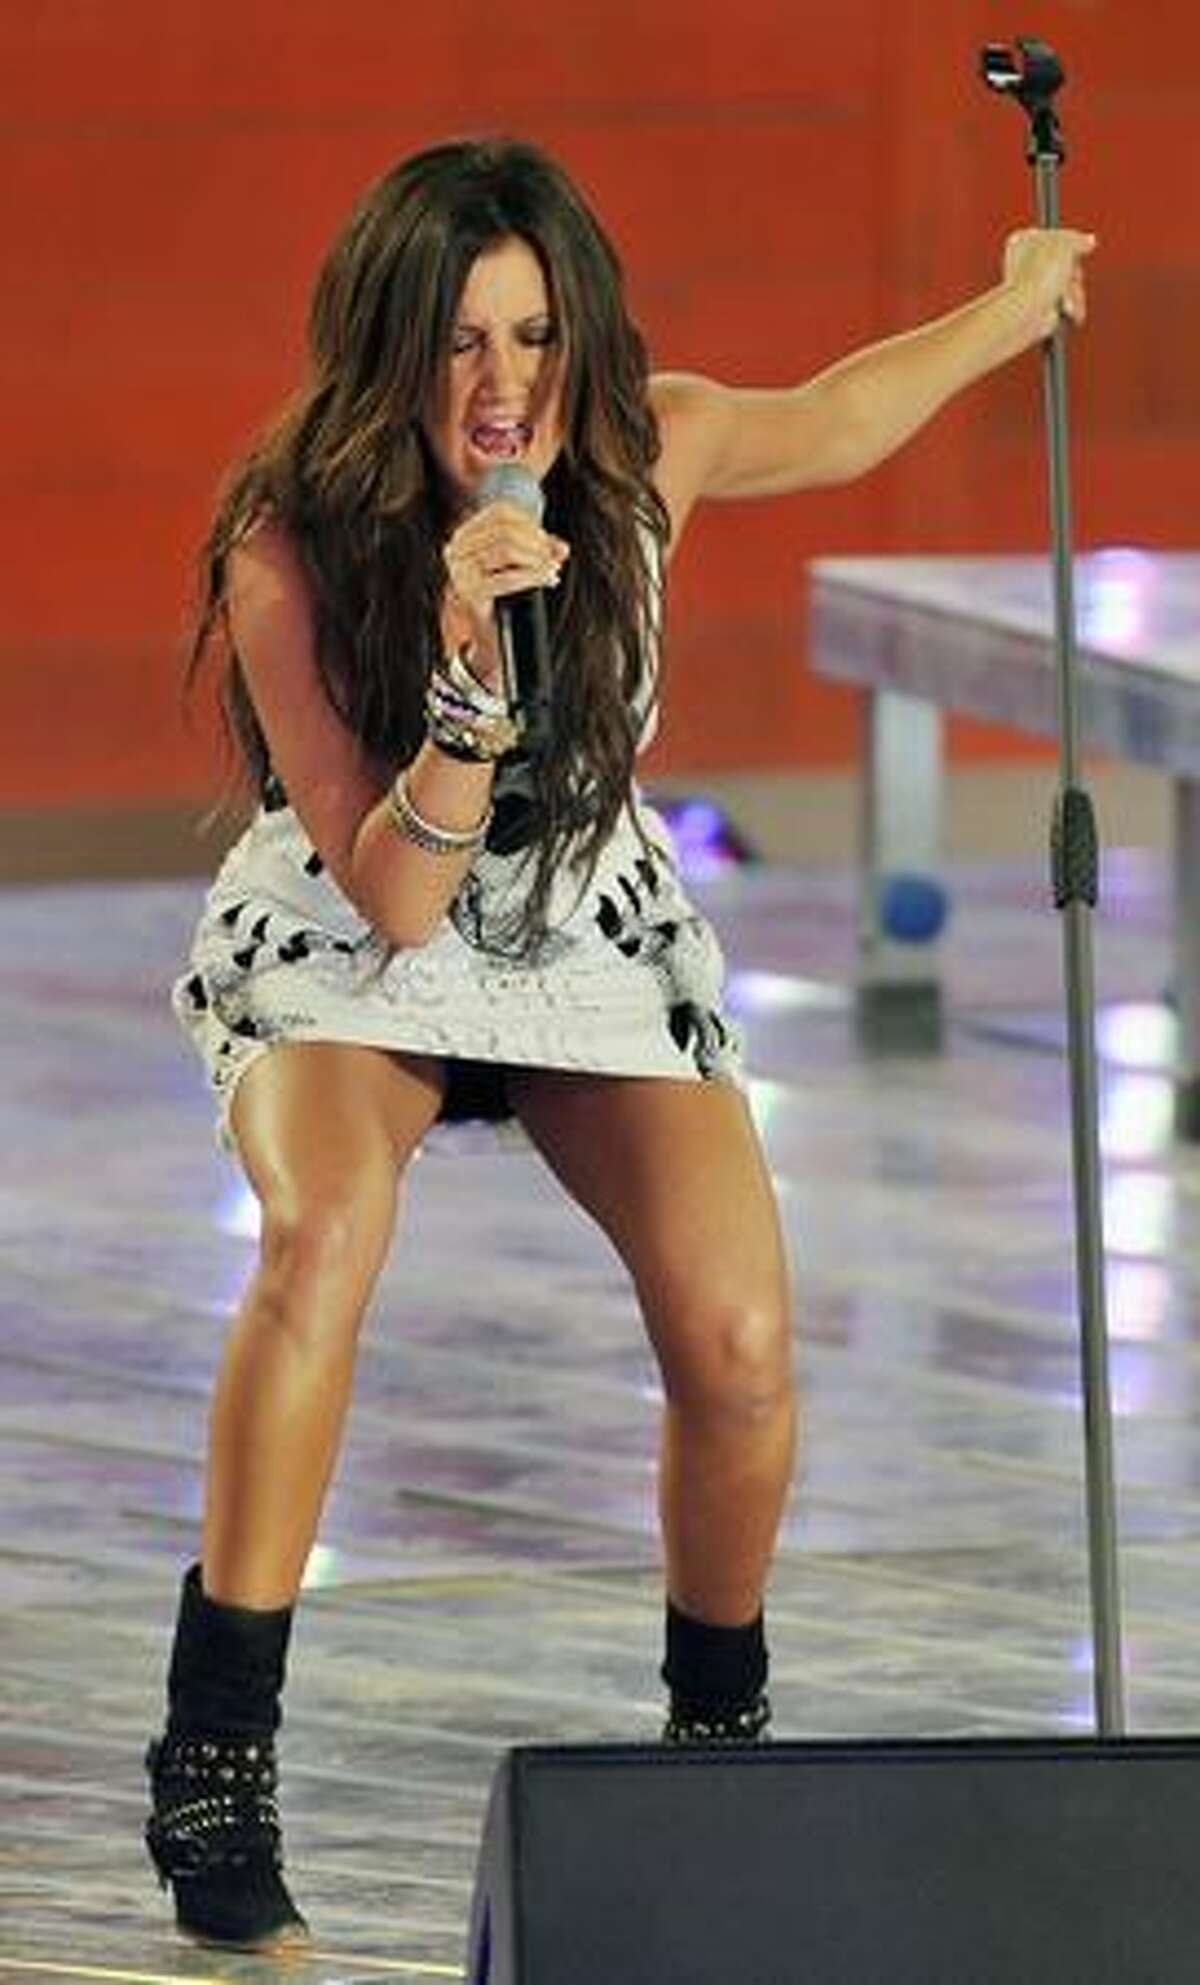 """Us actress and singer Ashley Tisdale performs on stage at the German television show """"Wetten Dass...?"""" in the Spanish Island's capital Palma de Mallorca on June 13."""